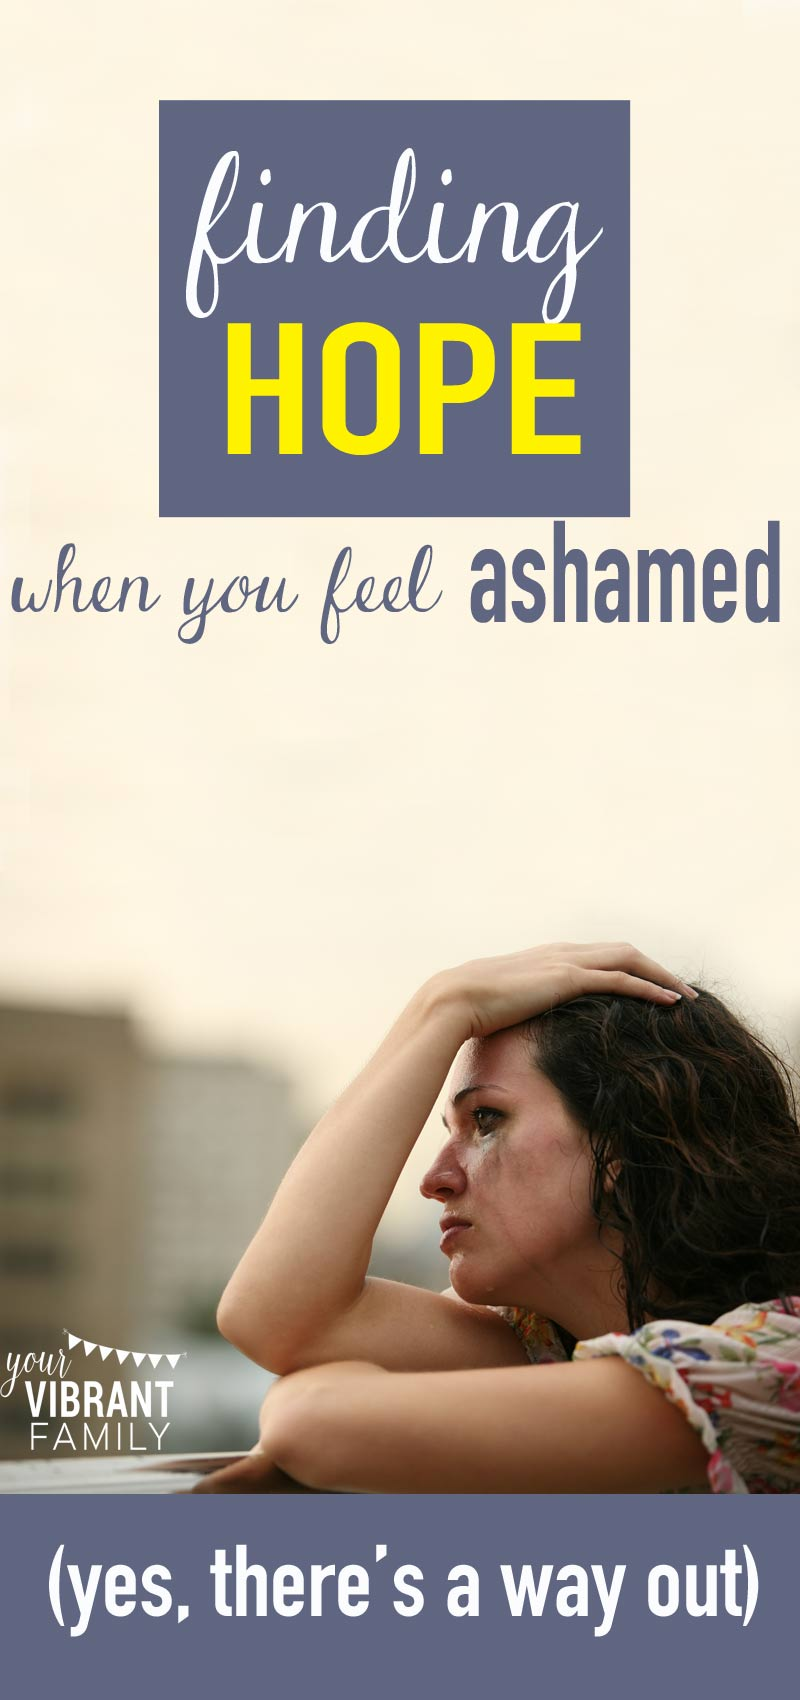 guilt shame | dealing guilt shame | dealing guilt | dealing shame | guilt shame | feeling shame | healing shame | guilt shame recovery